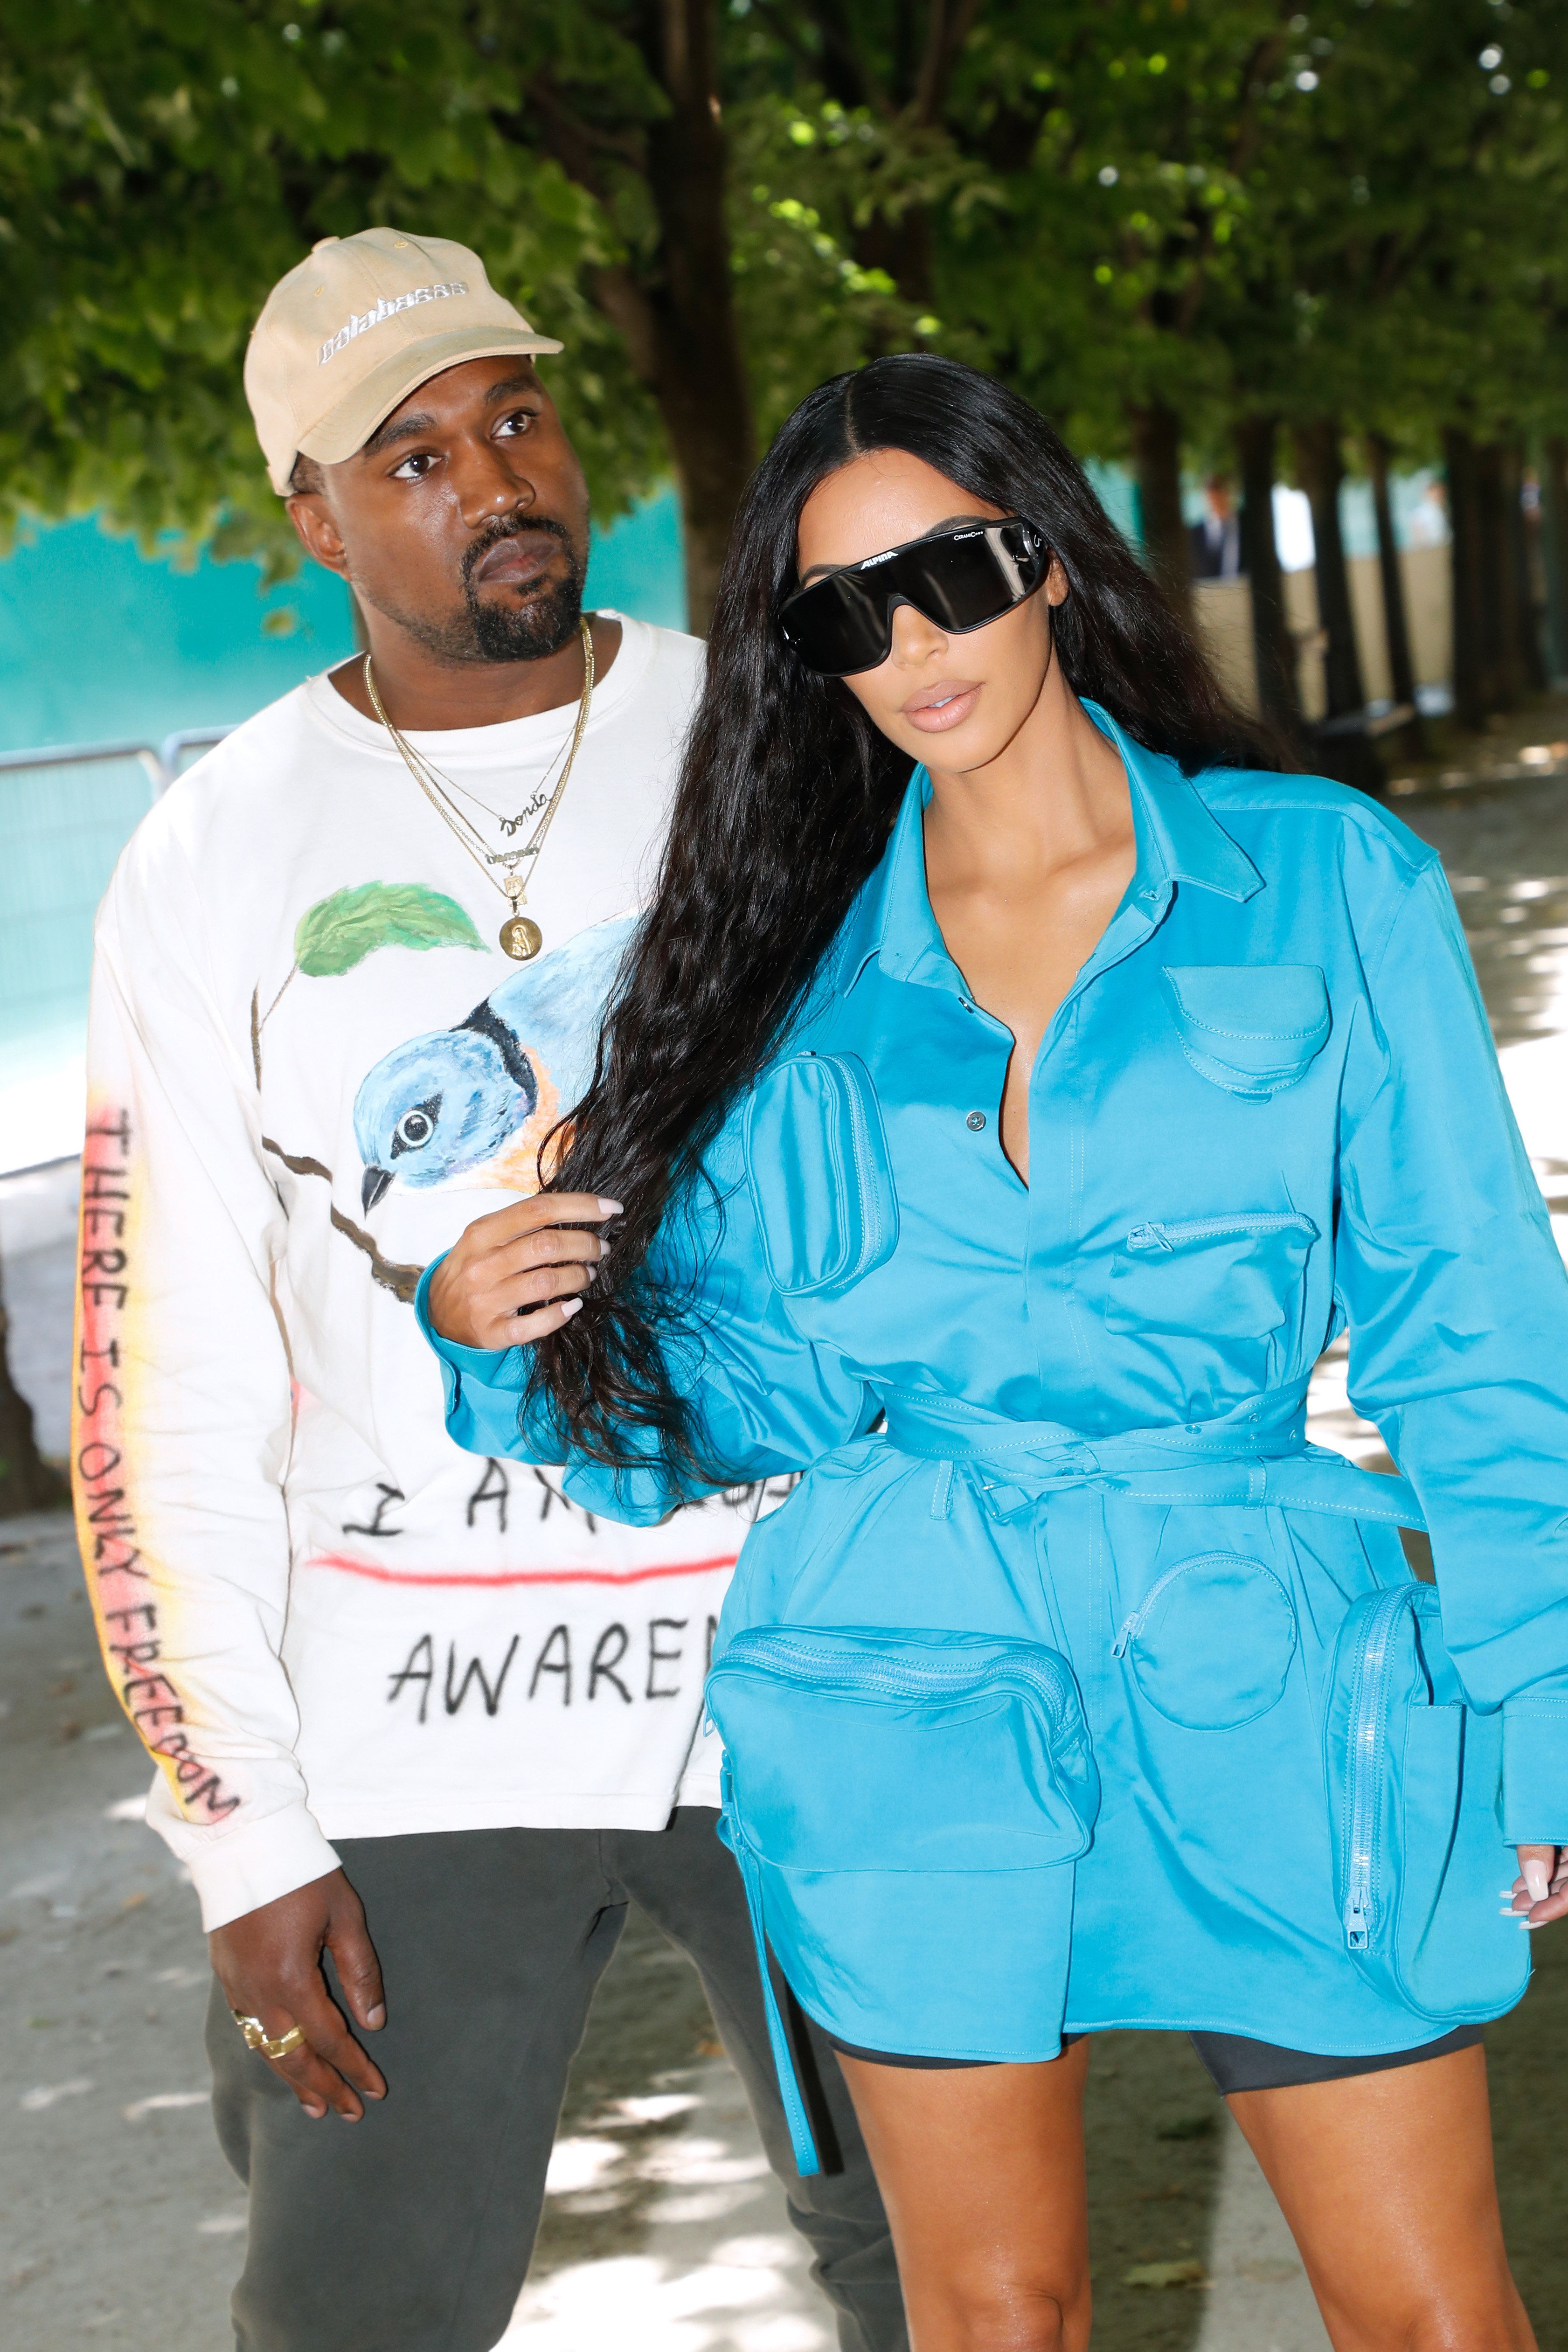 Kanye West (left) is now using Instagram to defend his wife, Kim Kardashian.